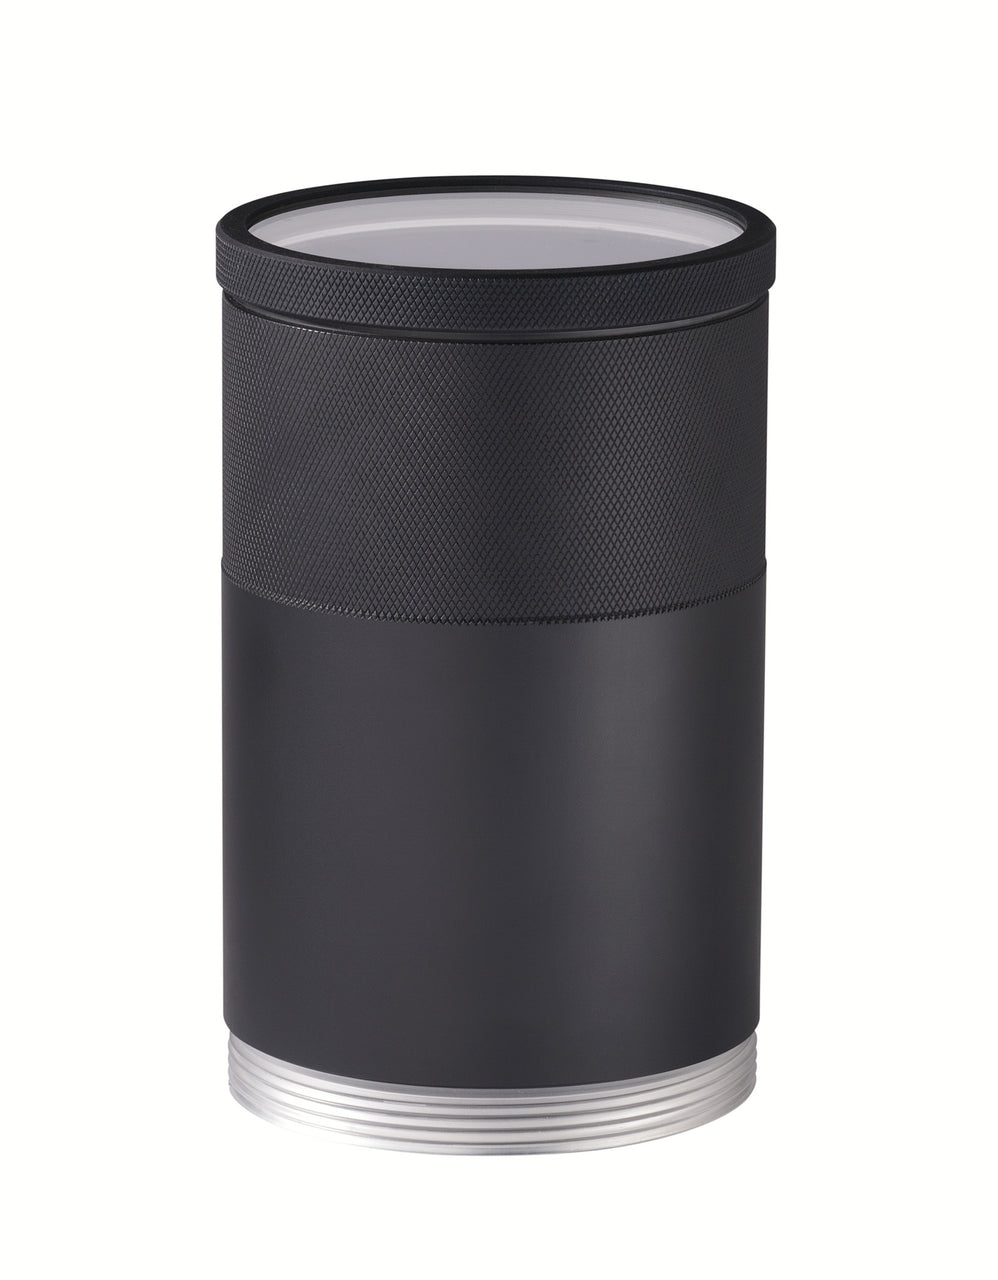 P-215 Camera Lens Port <br> Demo Sale Category-A